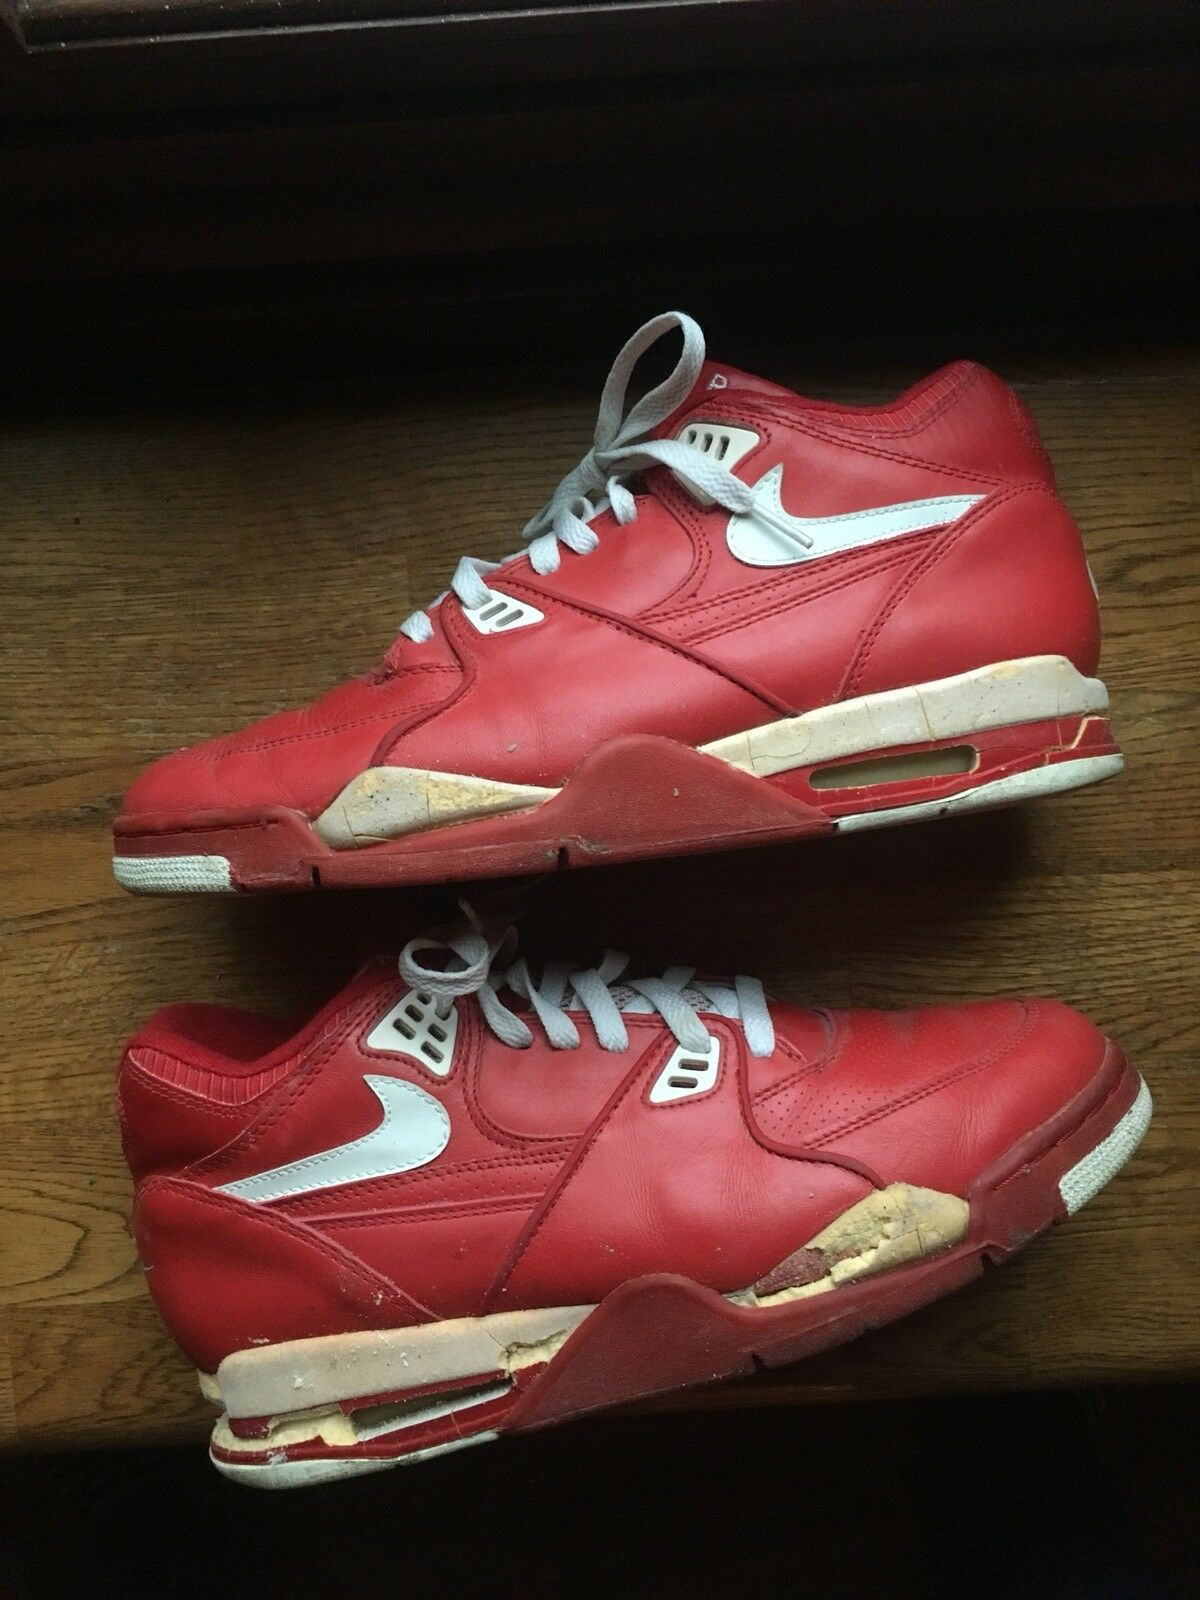 new product df9c8 52eaa 1989 Nike Air Flight Flight Flight 89 Size 10 Red Made In Korea Vintage  Restoration Sneakers